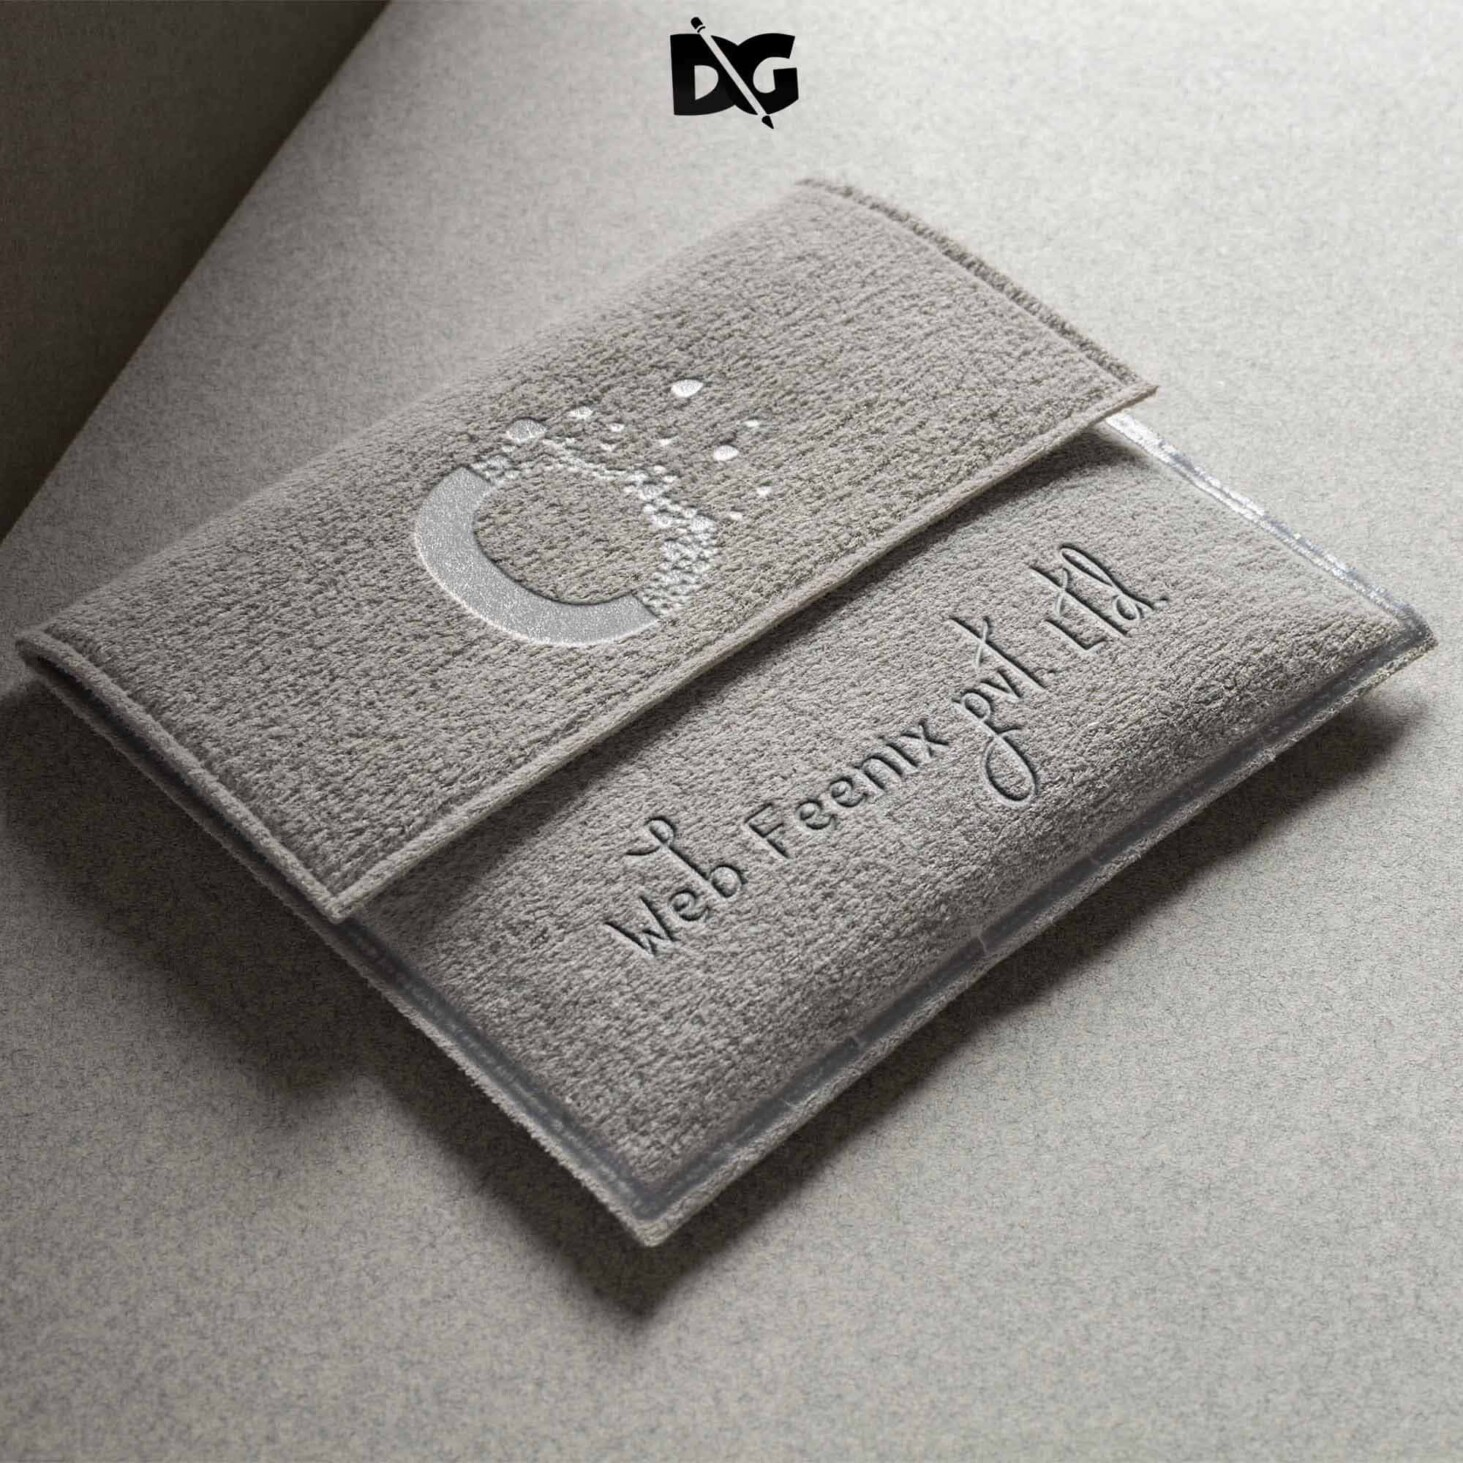 Cards Pouch Design Mockups